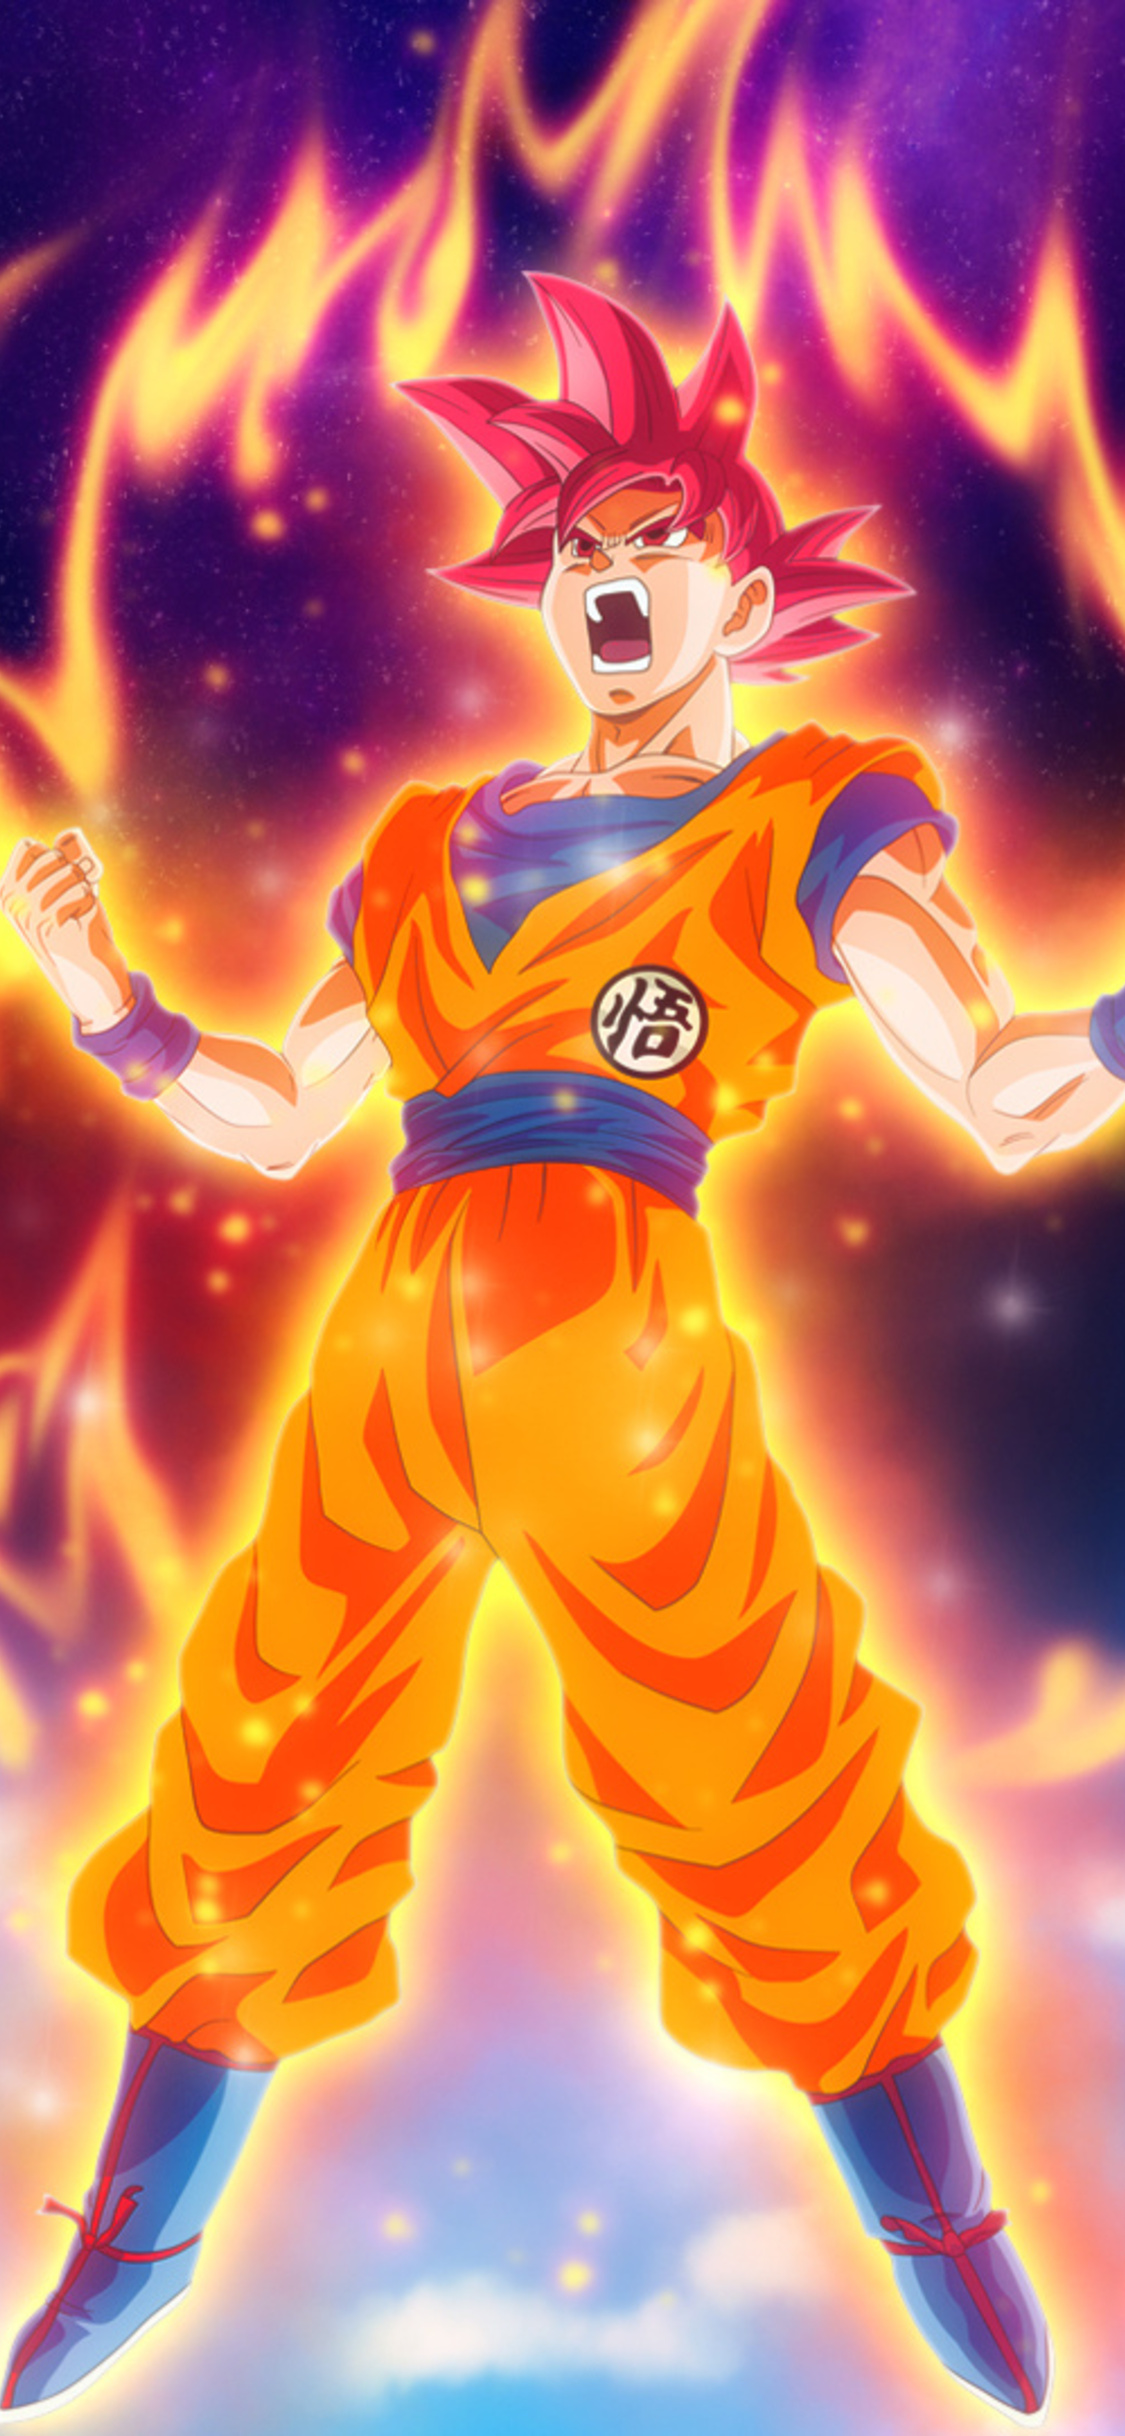 Image Dragon Ball Dragonball Iphone X Wallpaper